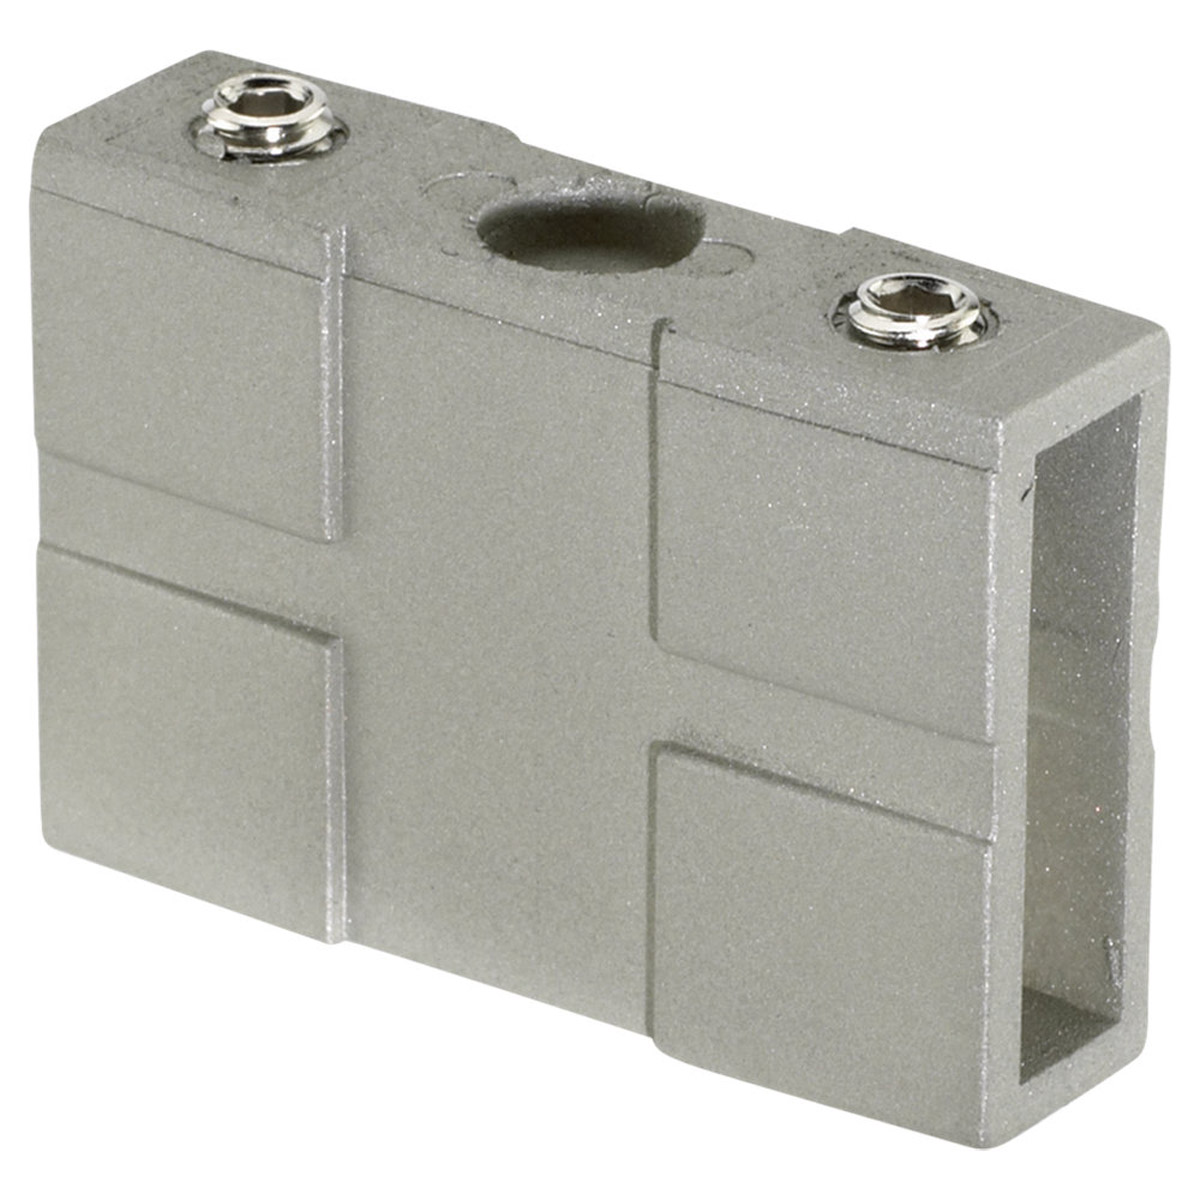 Sea Gull Lighting RTx Isolating Connector in Brushed Stainless 95331-98